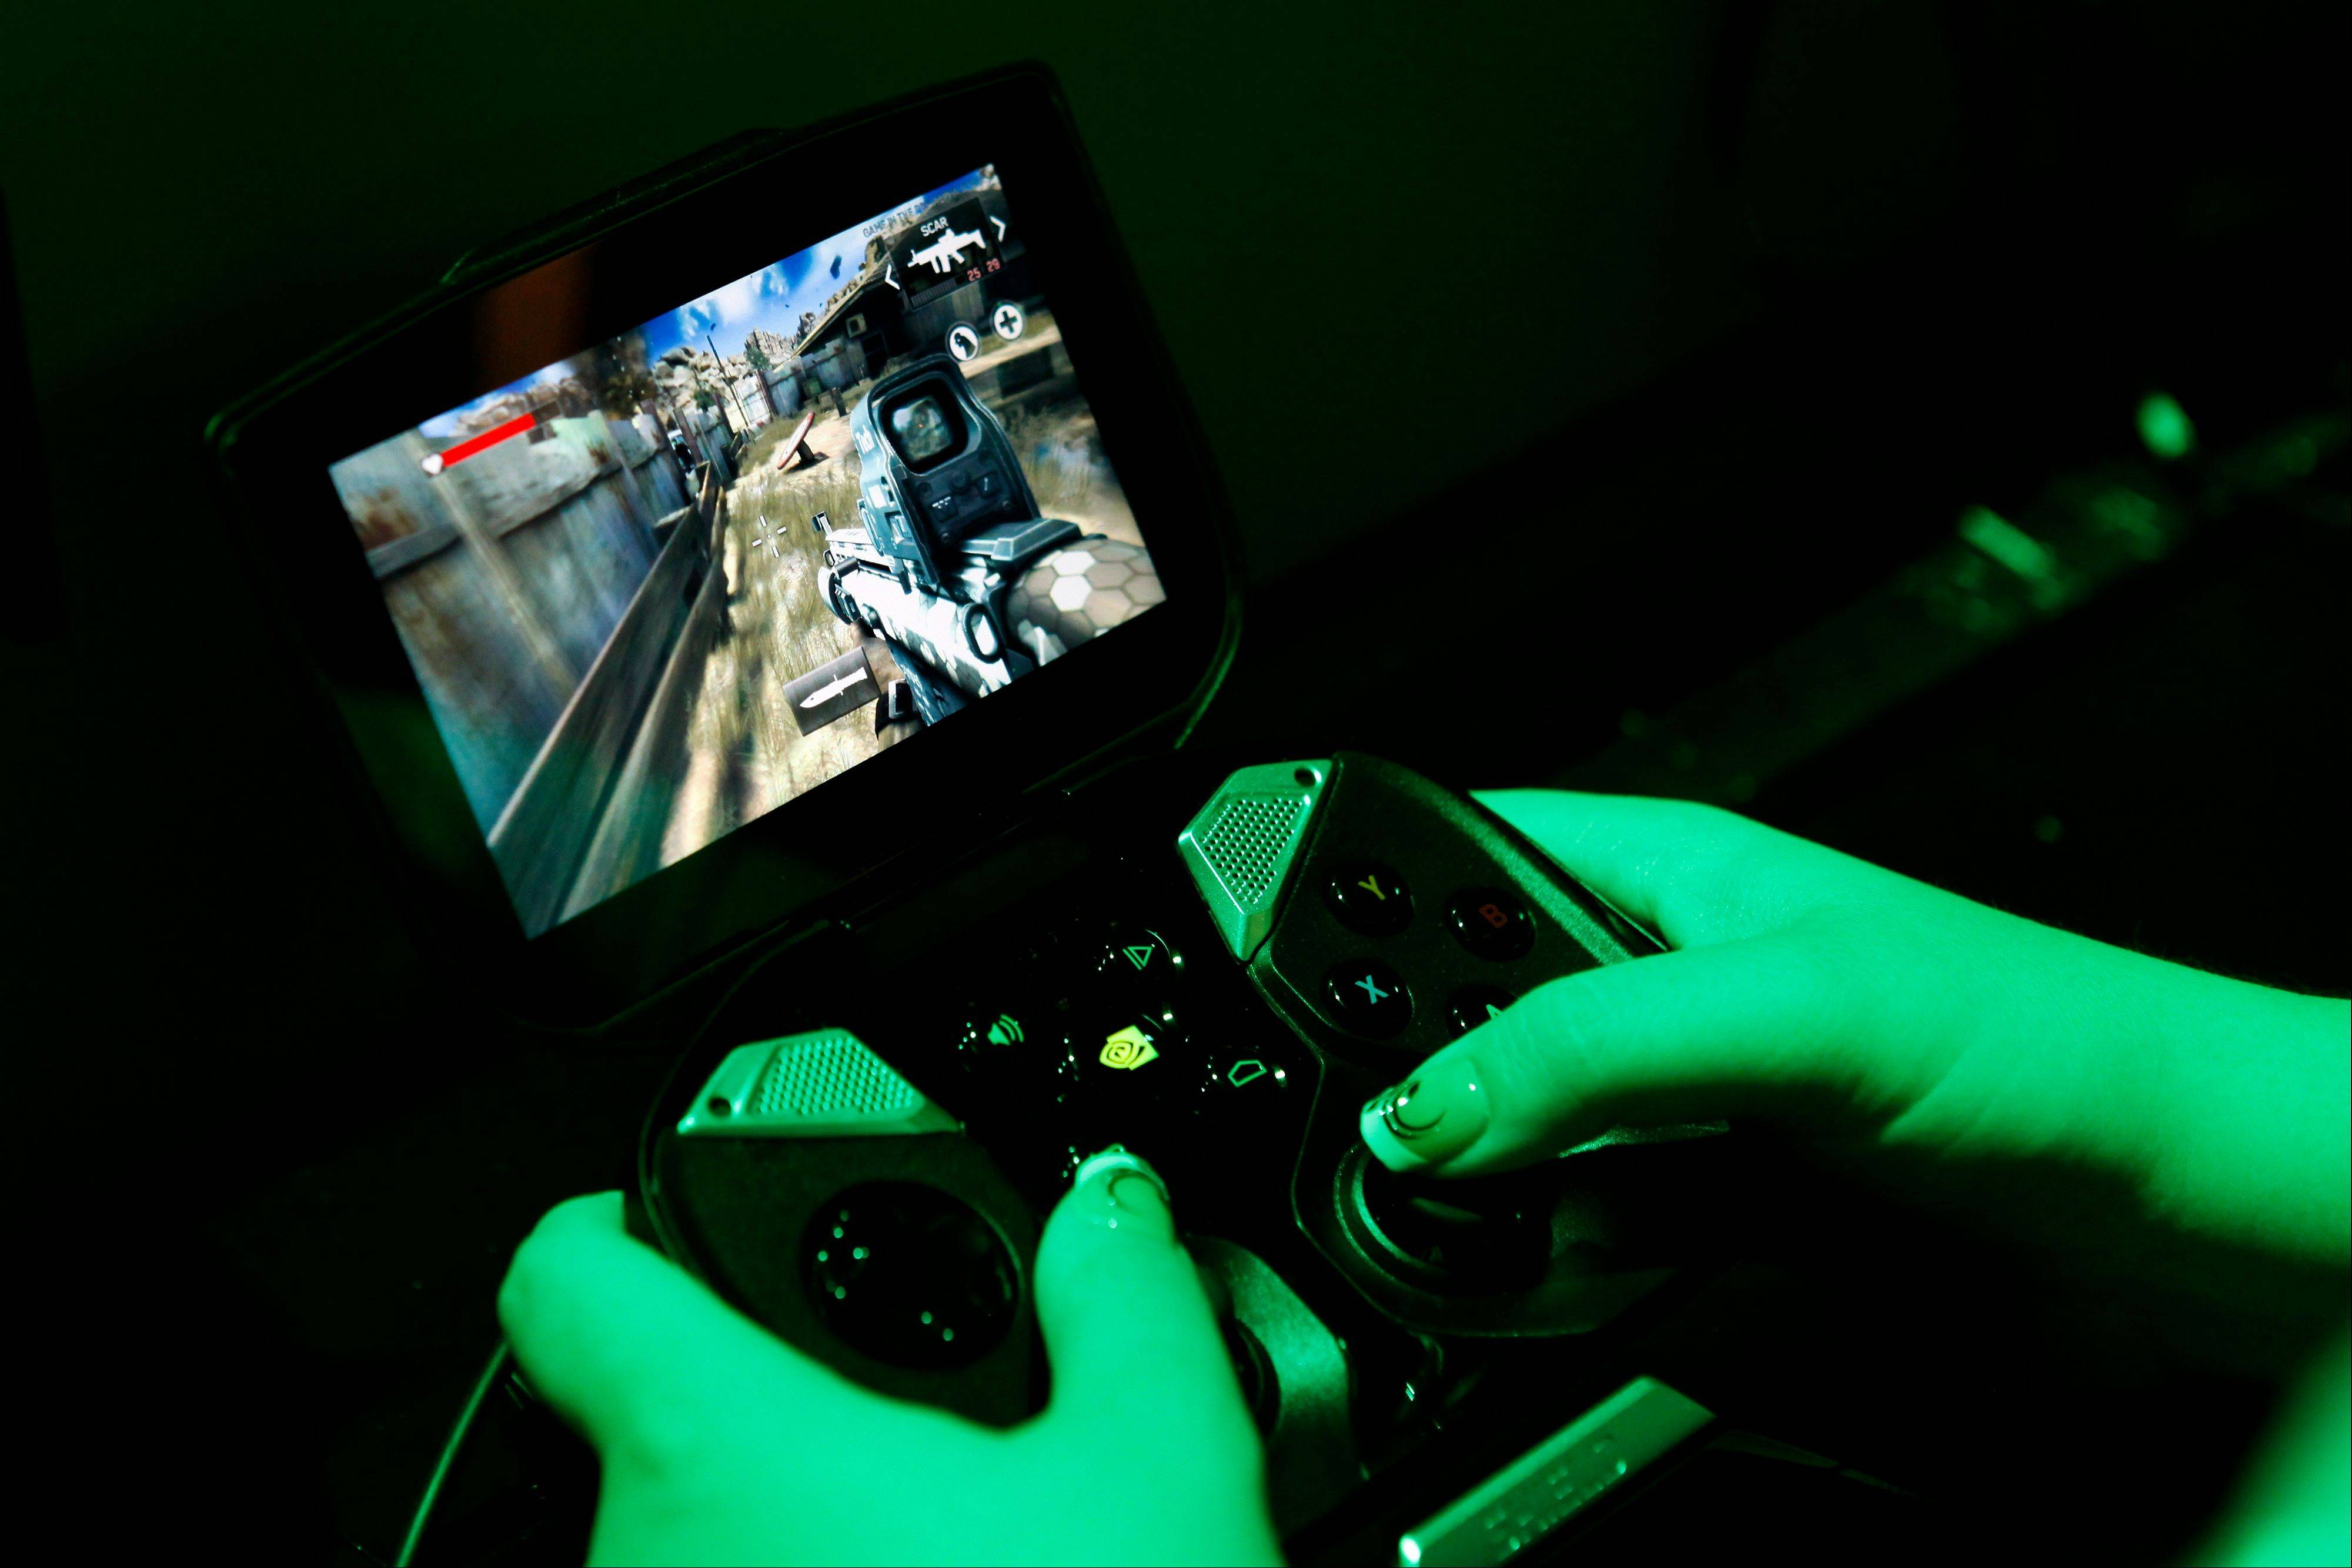 An attendee plays on Nvidia Corp.�s Nvidia Shield handheld game console at the company�s booth during the E3 Electronic Entertainment Expo in Los Angeles, California, U.S., on Wednesday, June 12, 2013. E3, a trade show for computer and video games, draws professionals to experience the future of interactive entertainment as well as to see new technologies and never-before-seen products.